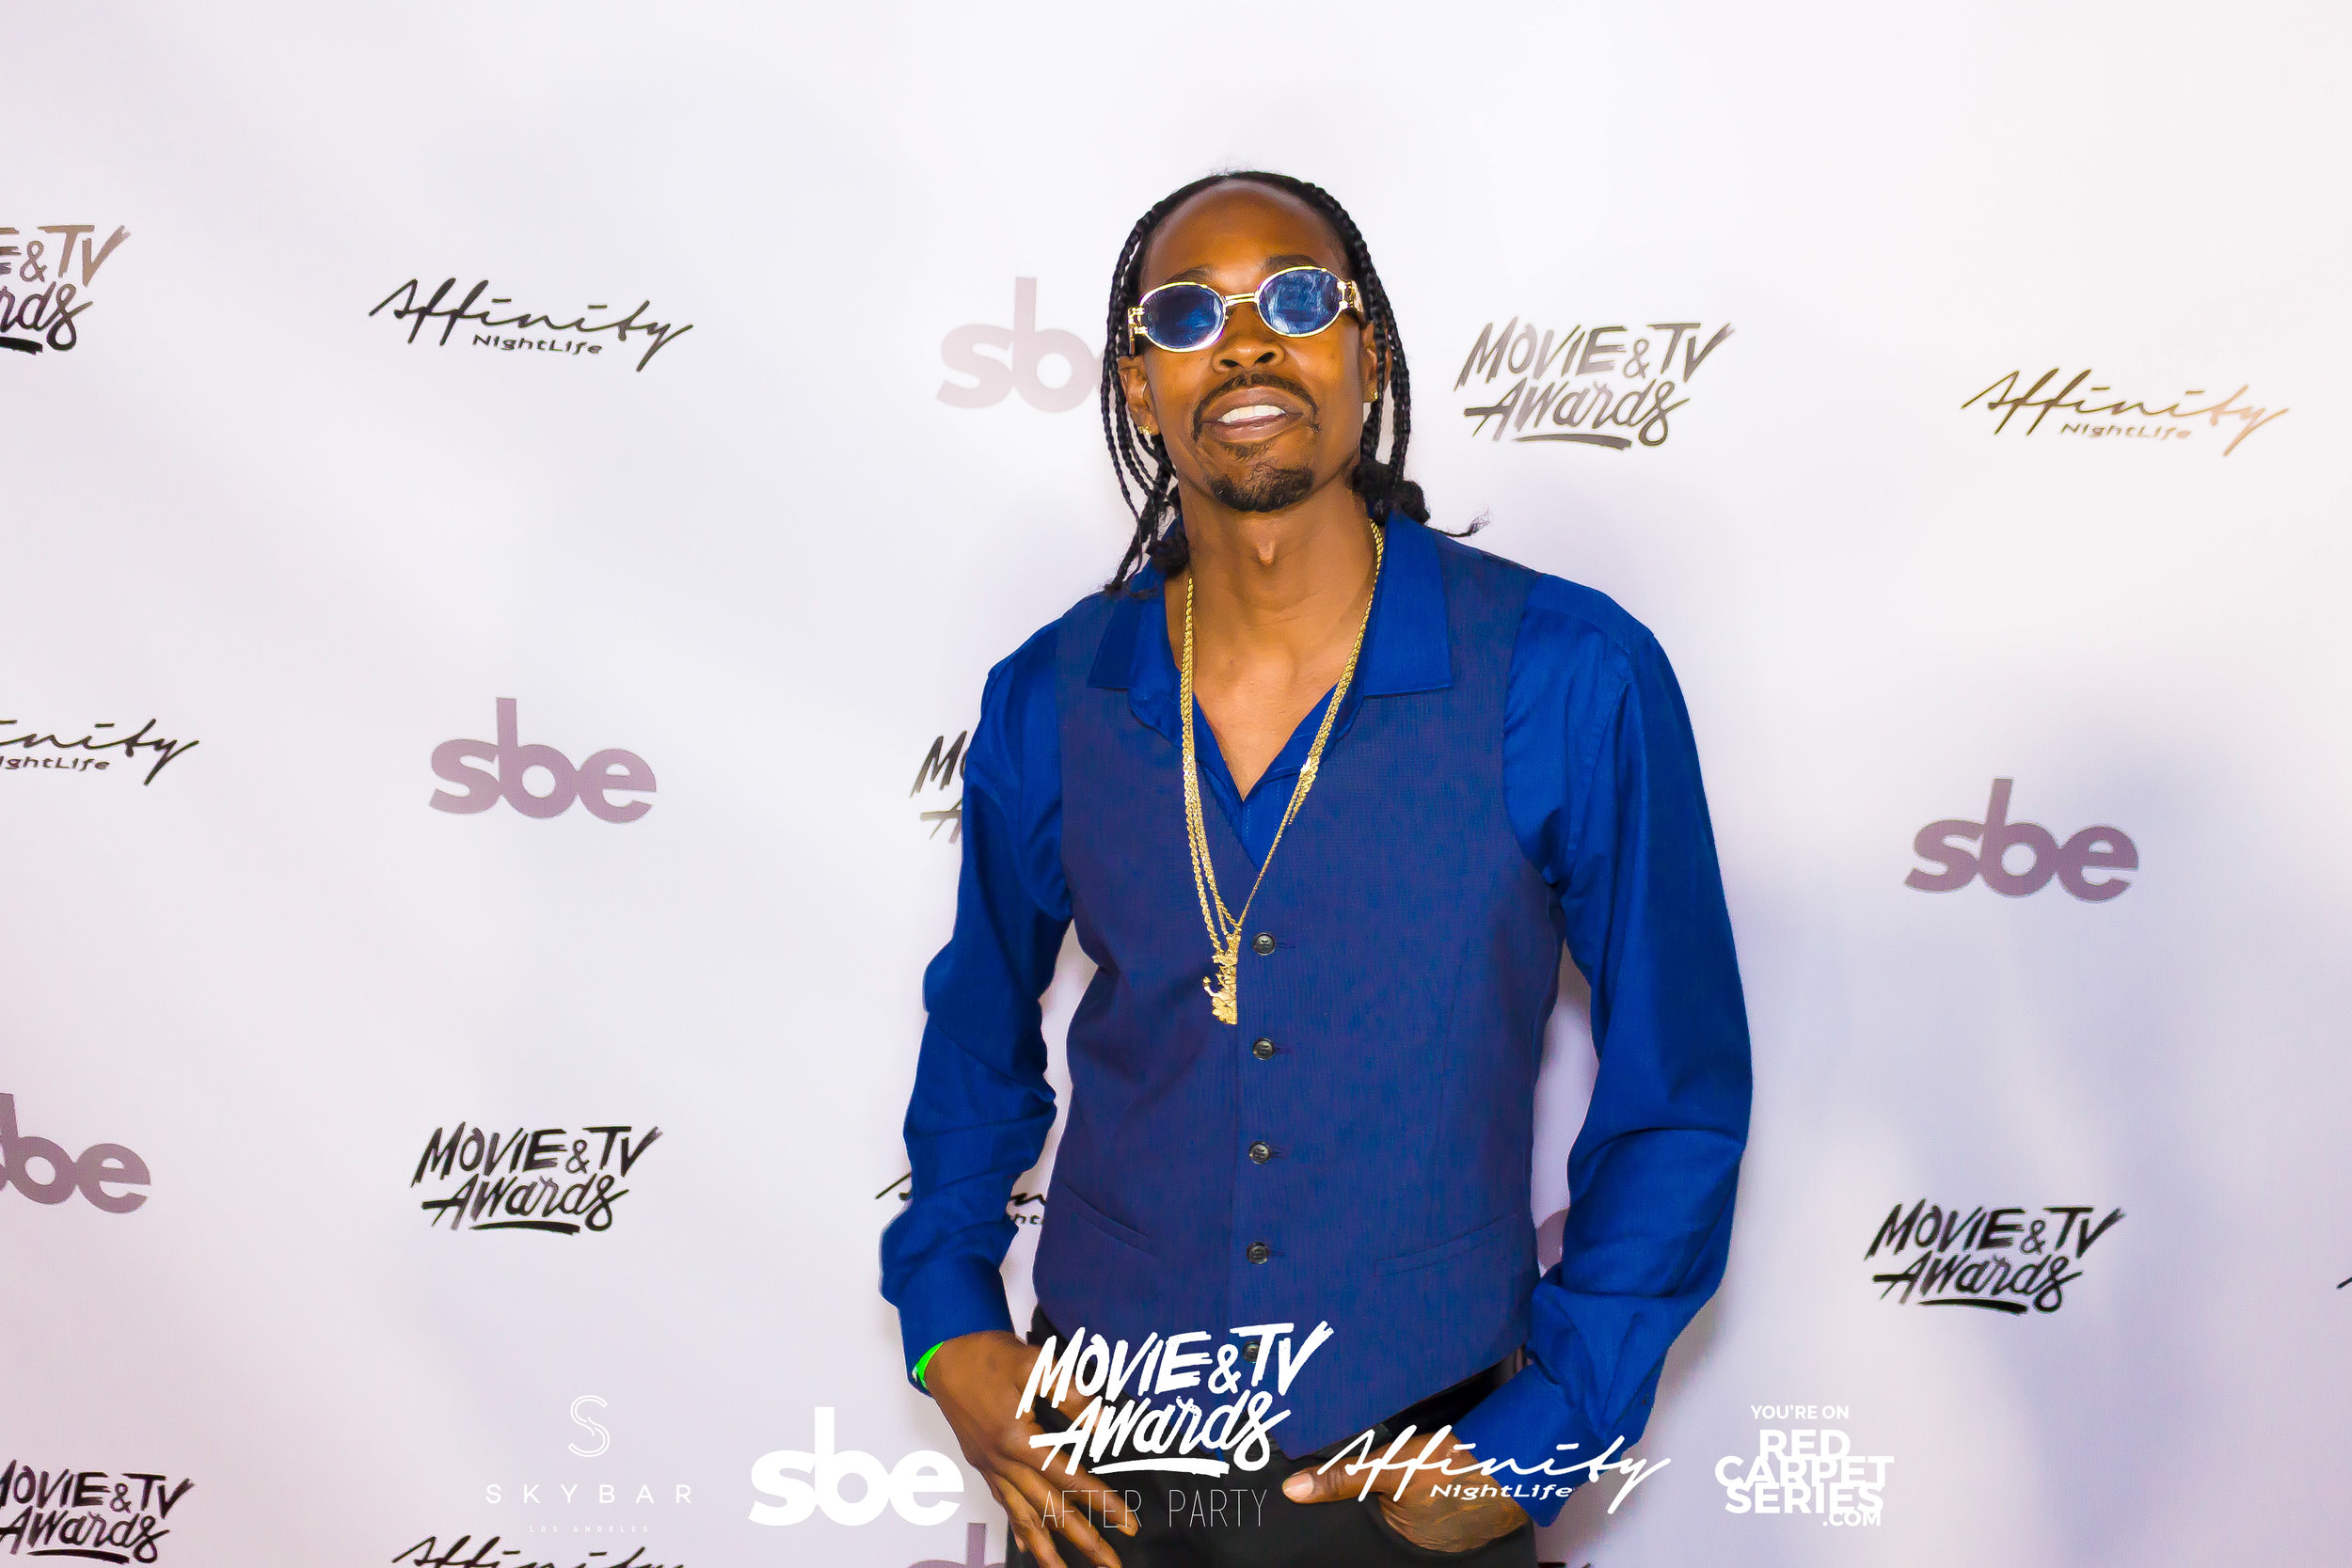 Affinity Nightlife MTV Movie & TV Awards After Party - Skybar at Mondrian - 06-15-19 - Vol. 1_108.jpg